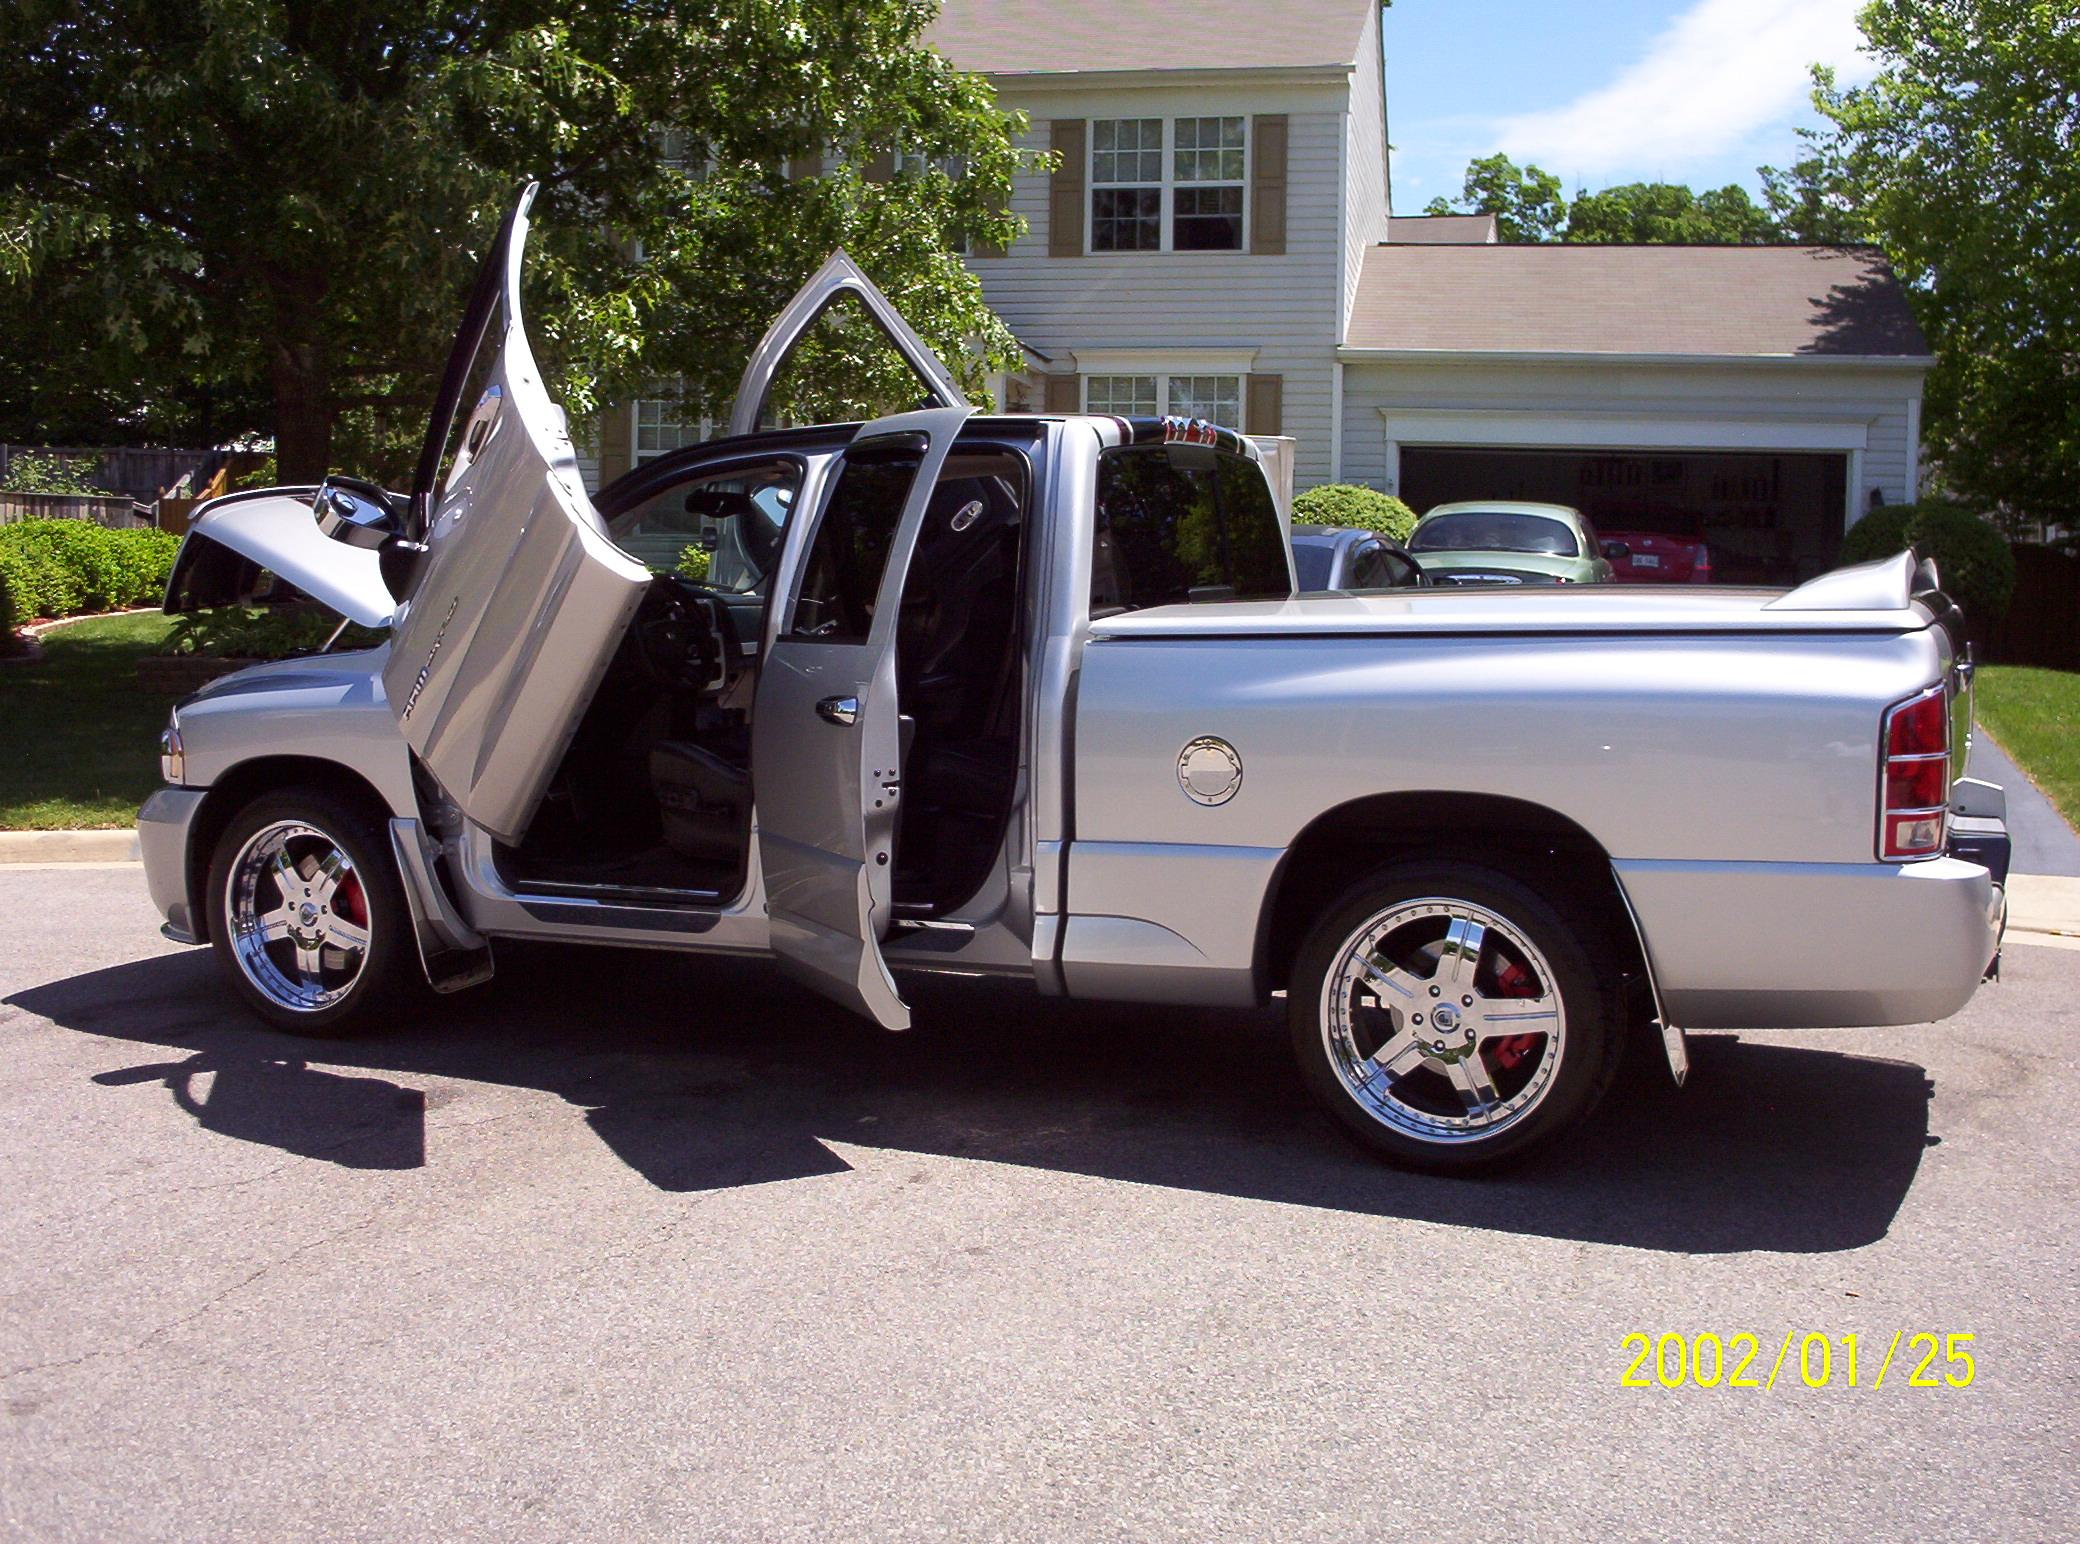 frankarre 2005 dodge ram srt 10 specs photos modification info at cardomain. Black Bedroom Furniture Sets. Home Design Ideas